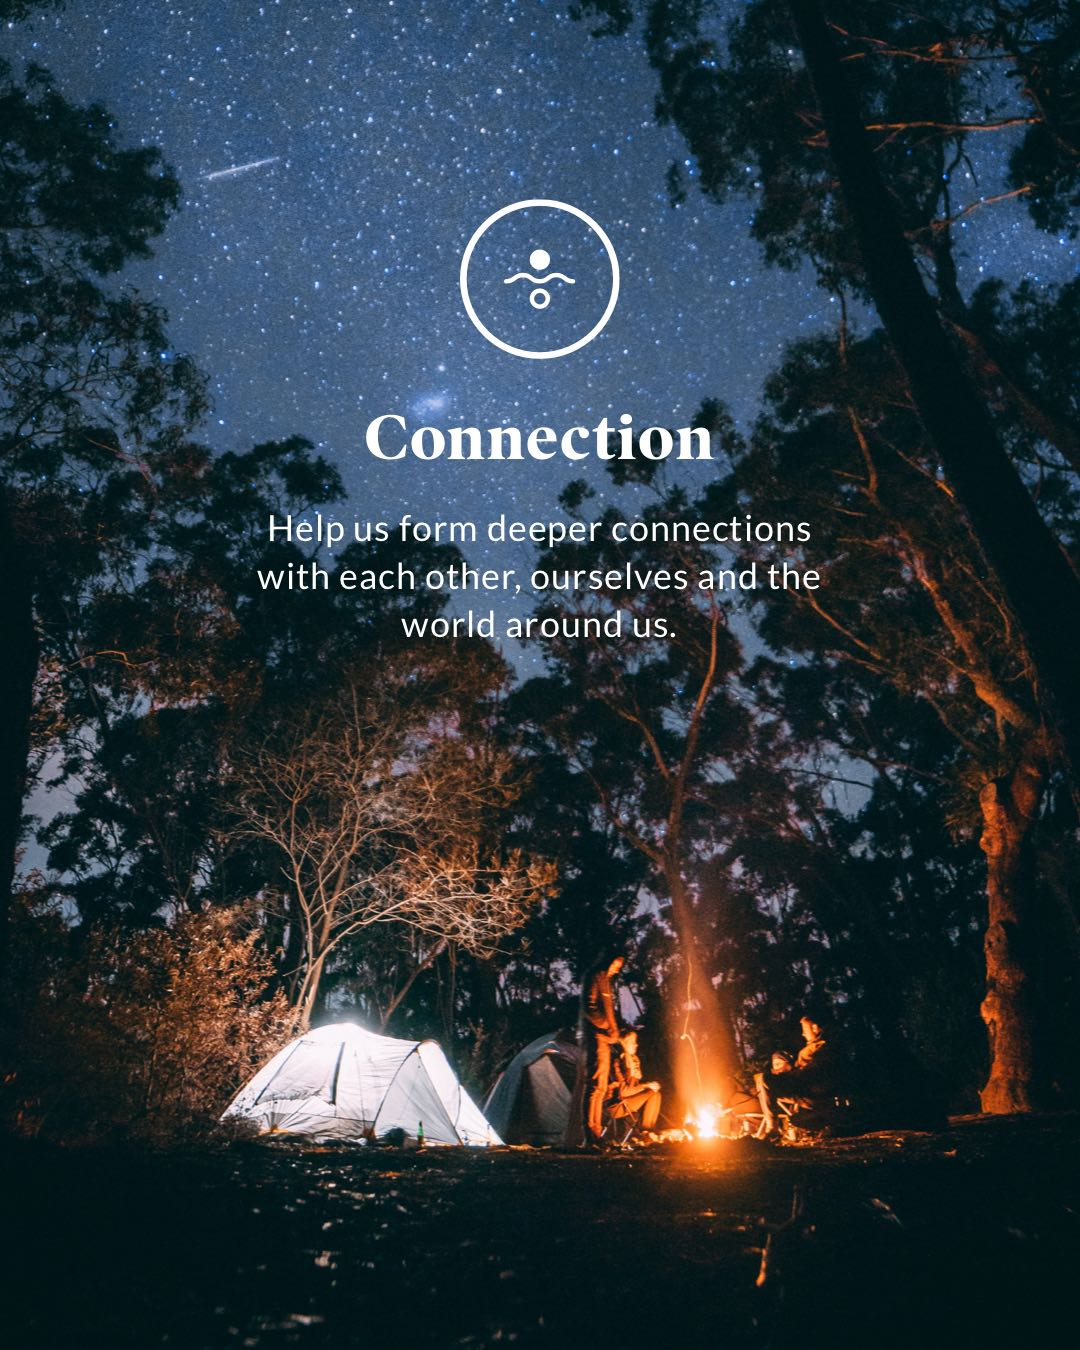 Connection - Help us form deeper connections with each other, ourselves and the world around us.